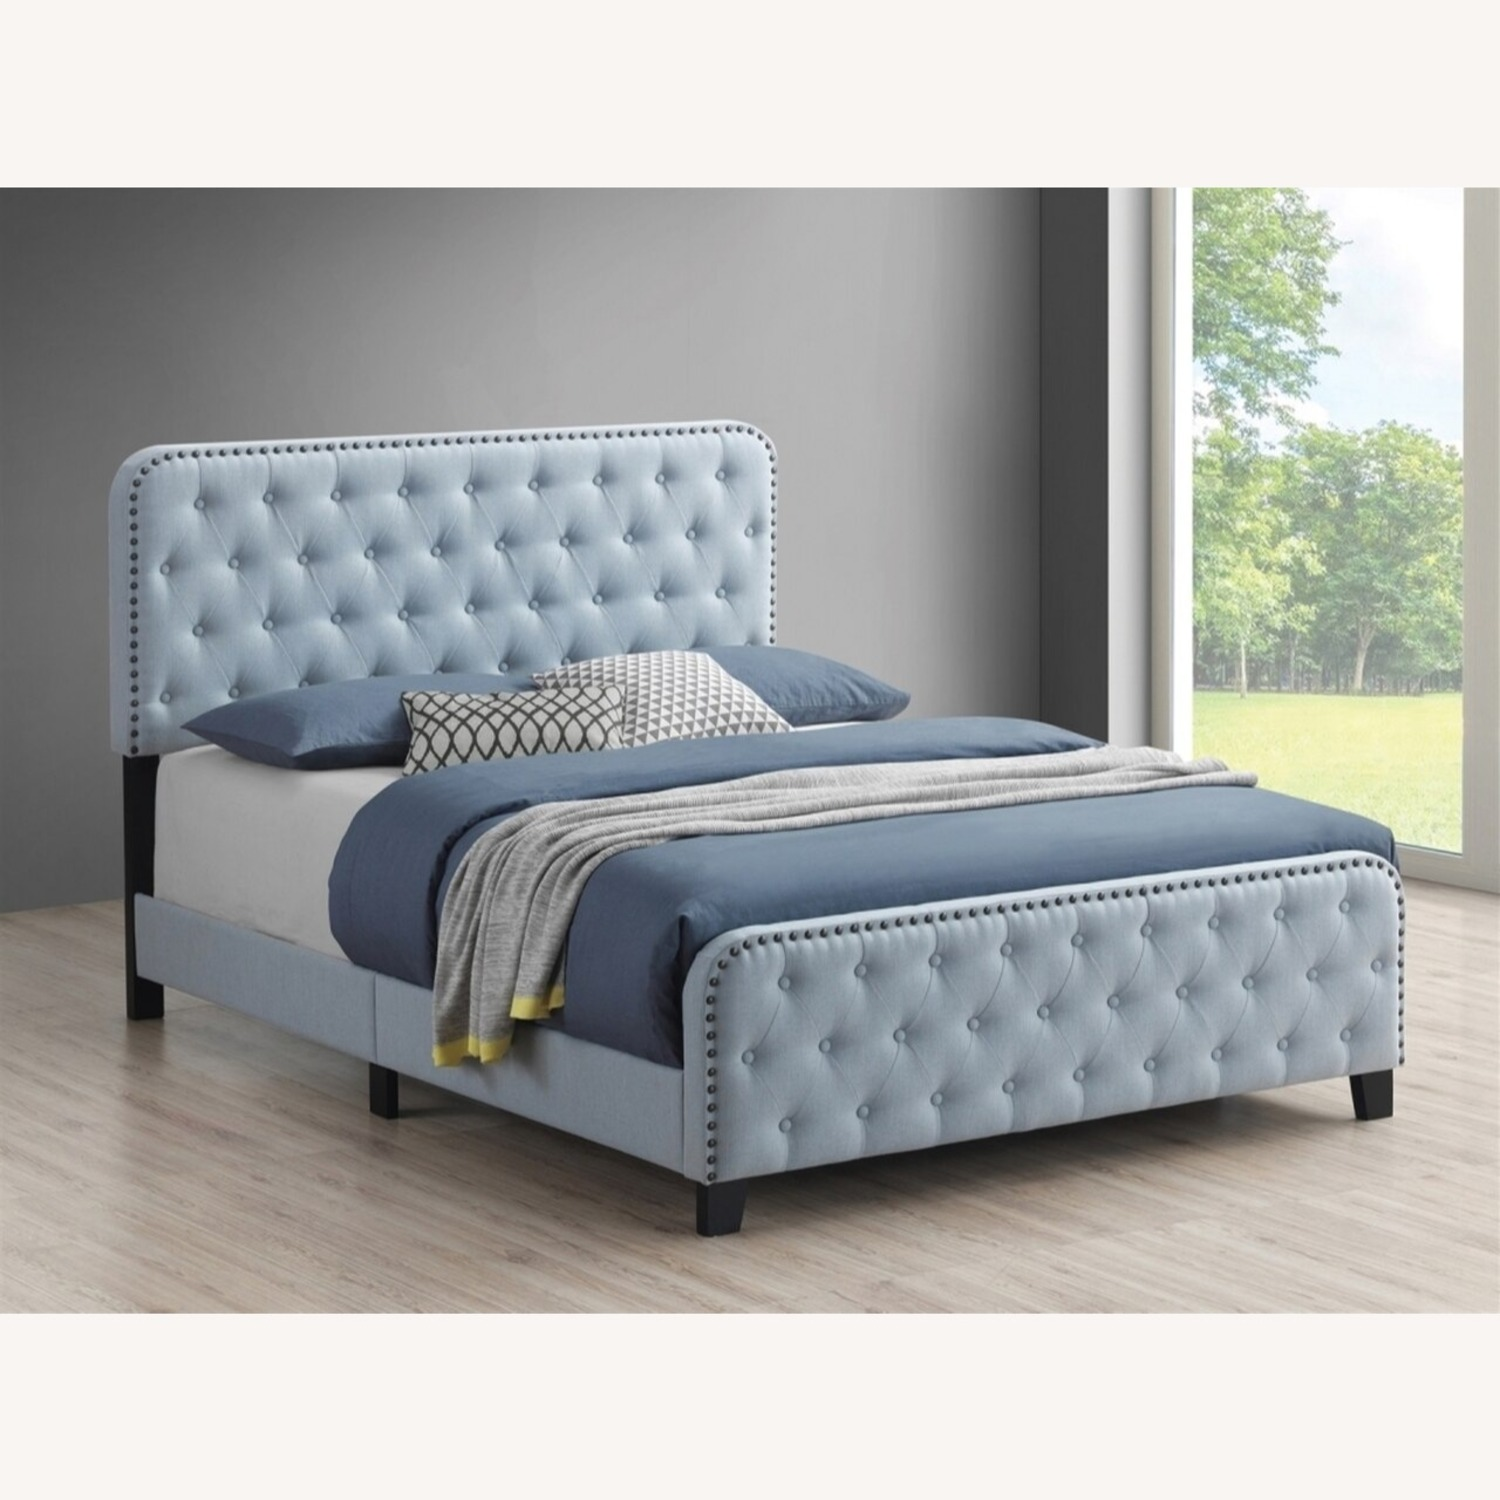 Vintage Queen Bed In Delft Blue Fabric - image-3